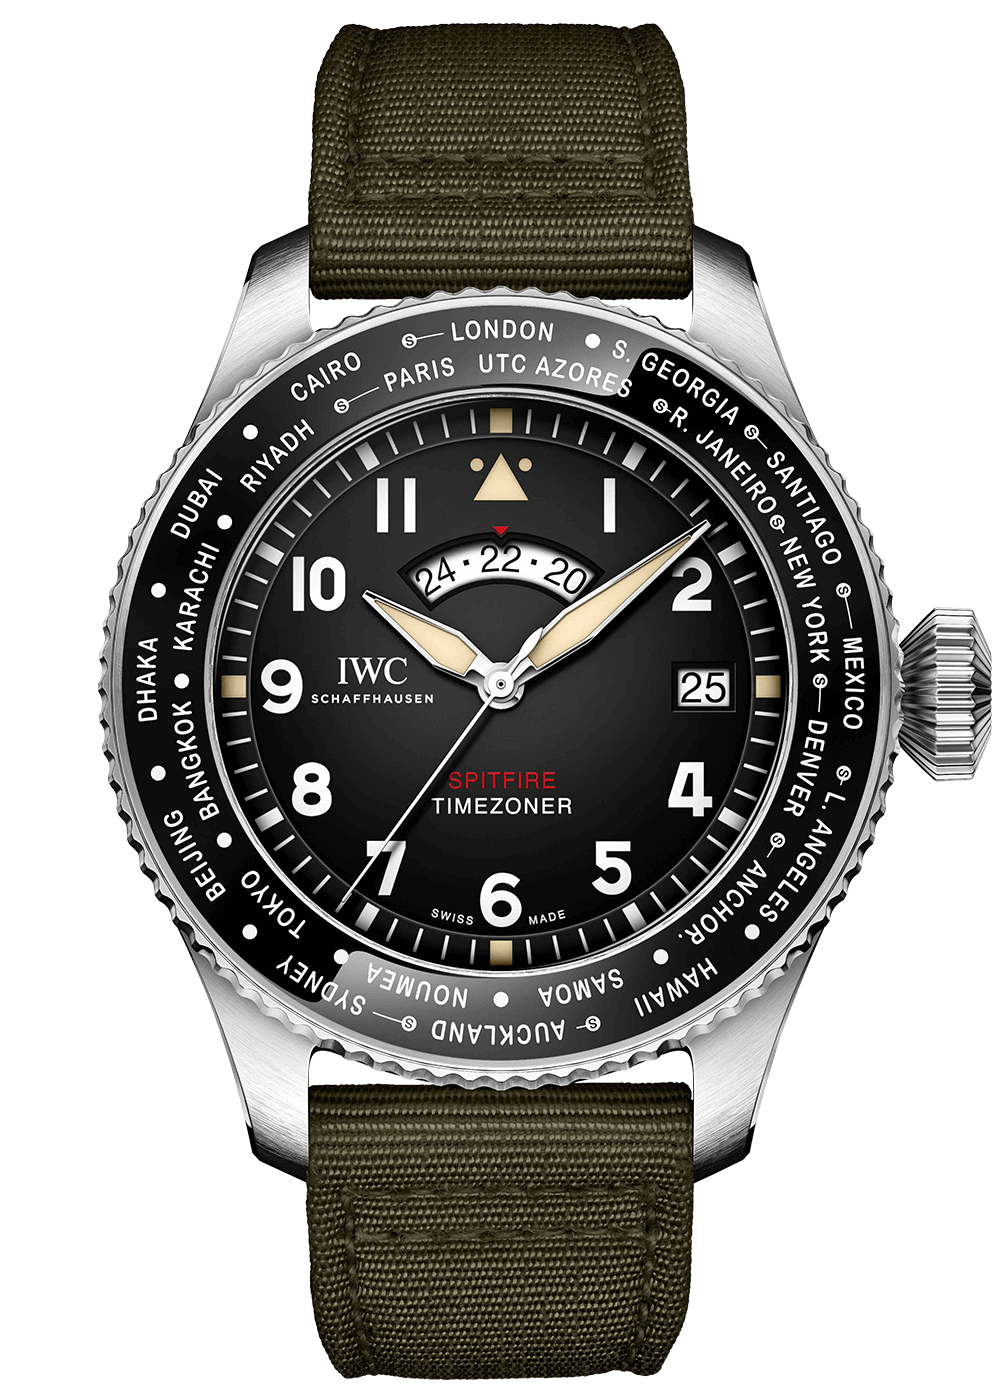 IWC Pilot Timezoner Spitfire The Longes Flight